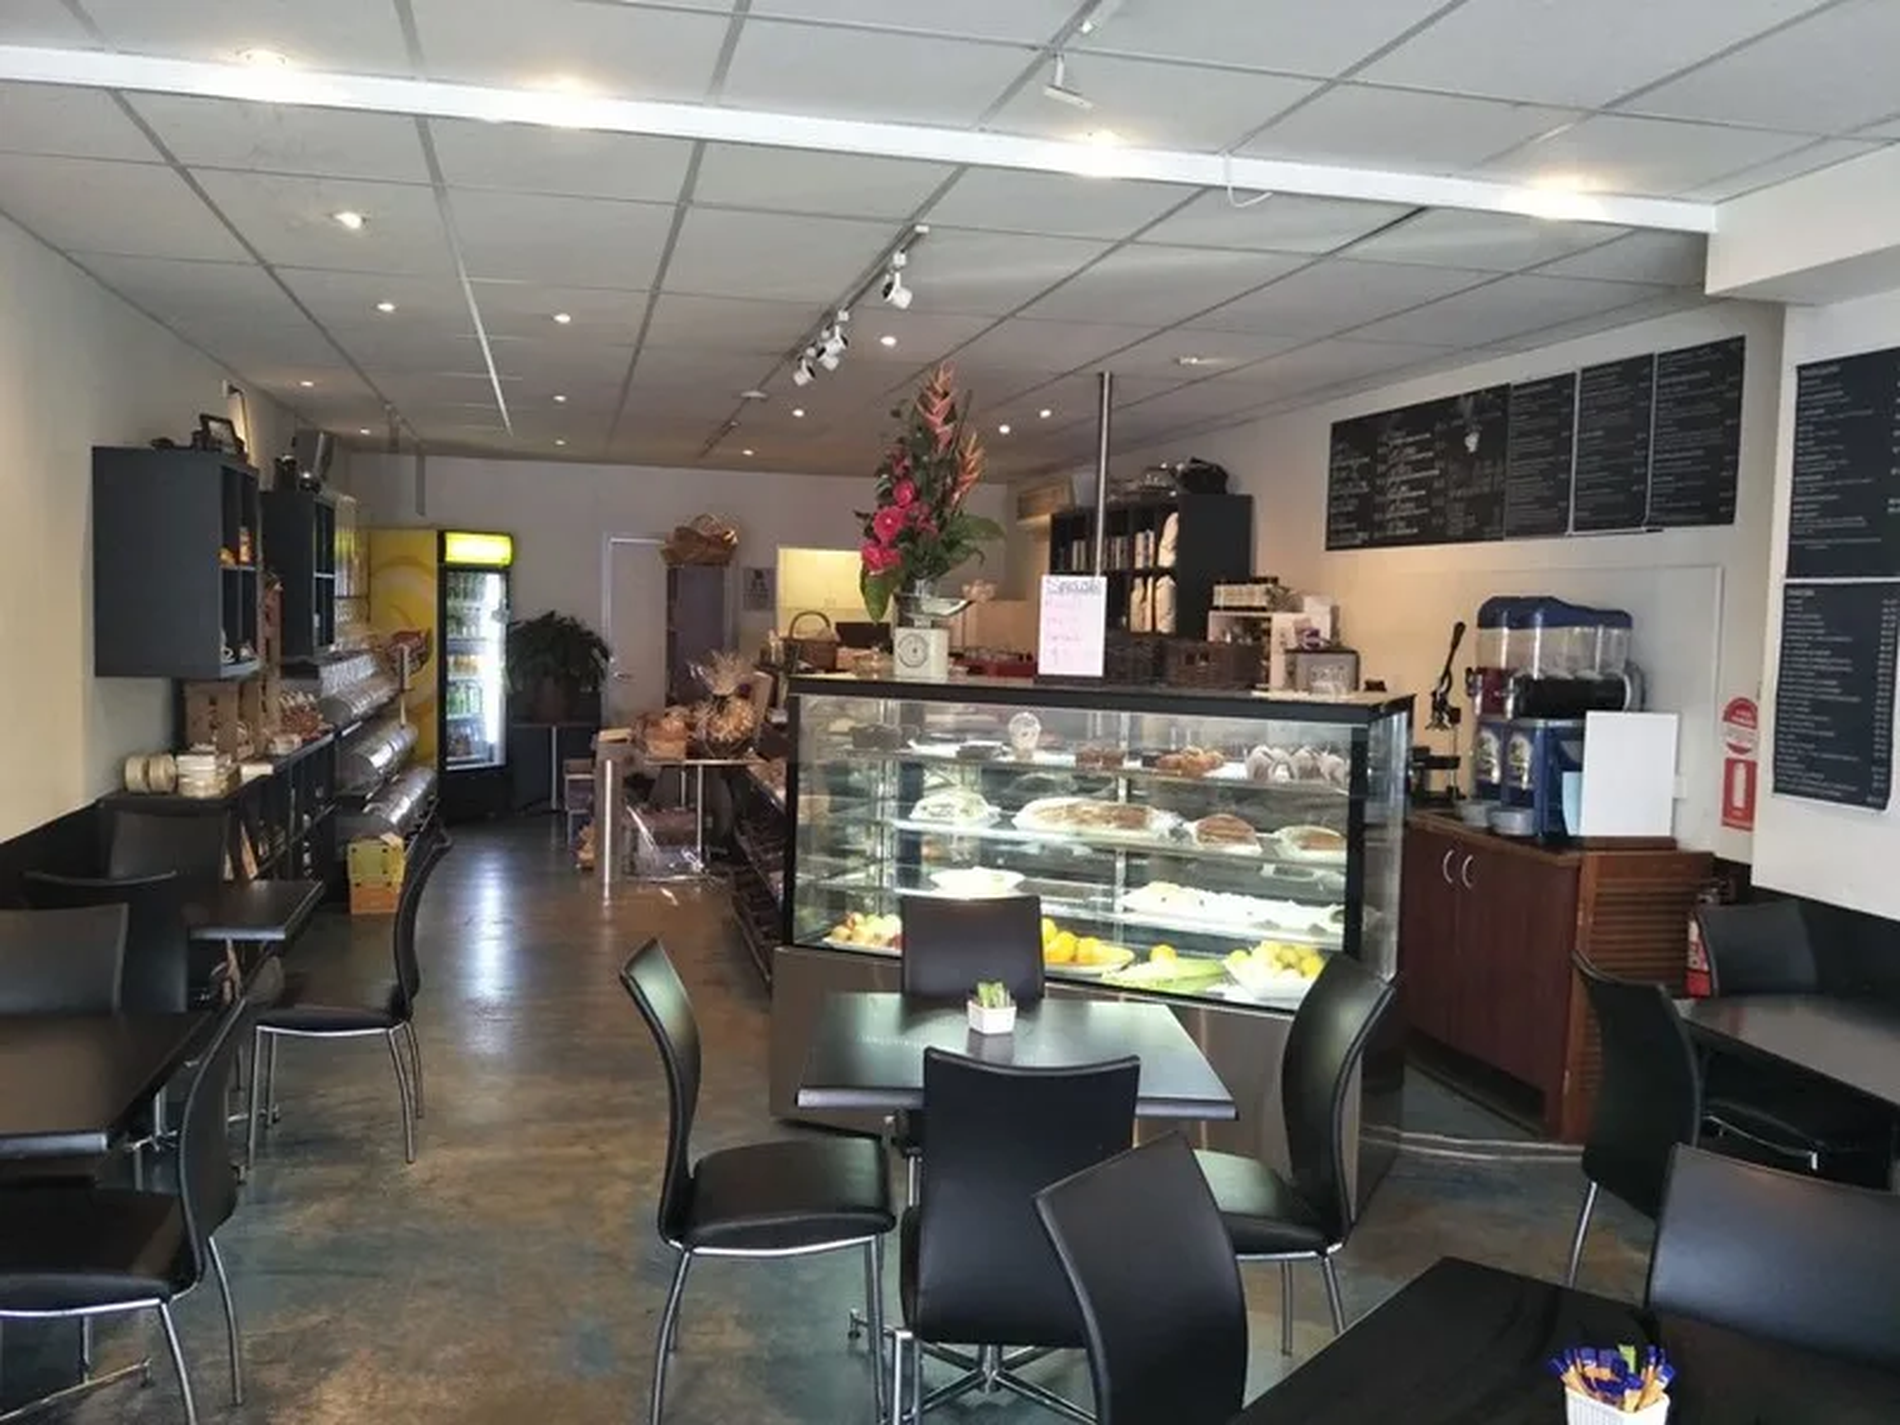 SOLD Cafe and Sweets, Lollies, Cakes, very little to no cooking